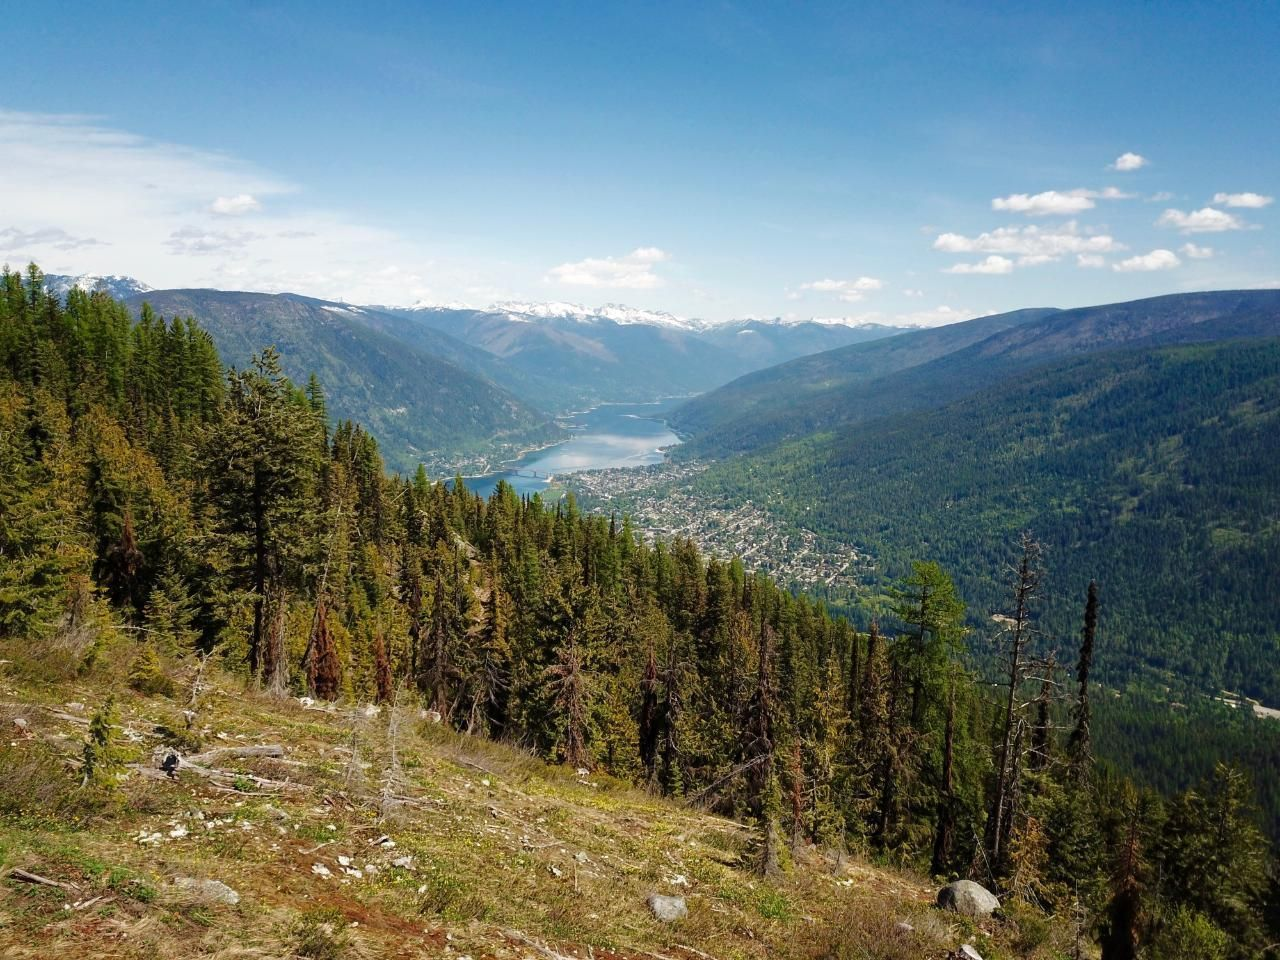 Main Photo: DL 1752 GIVEOUT CREEK FOREST SERVICE ROAD in Nelson: Vacant Land for sale : MLS®# 2458886